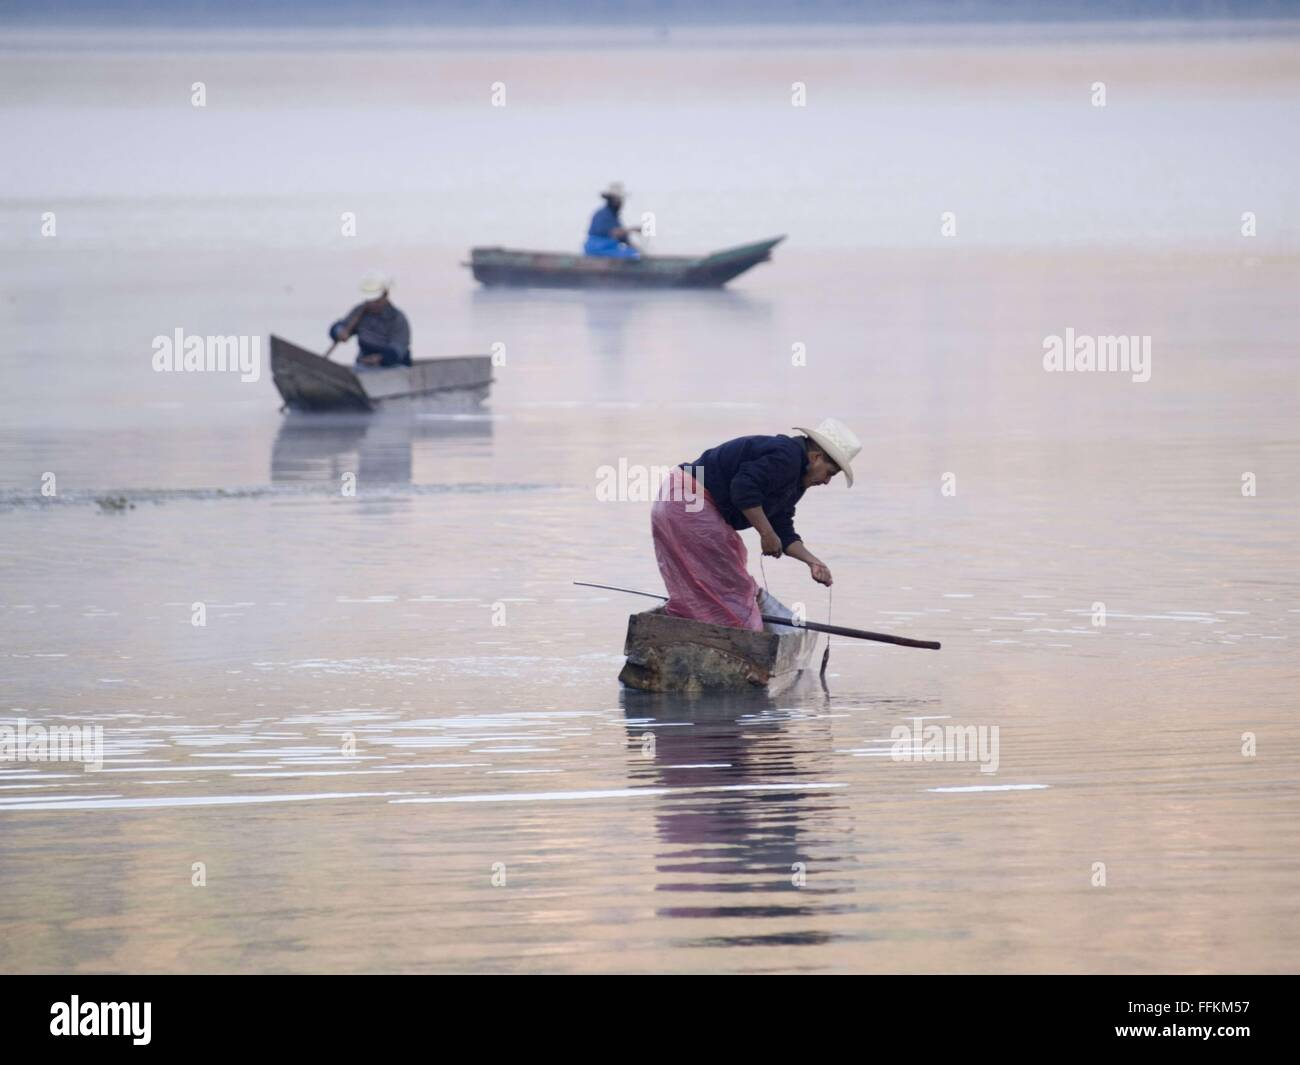 Feb. 17, 2013 - Santiago Atitlan, Solola, Guatemala - Fishermen at work on Lake Atitlan in Santiago Atitlan, Guatemala - Stock Image